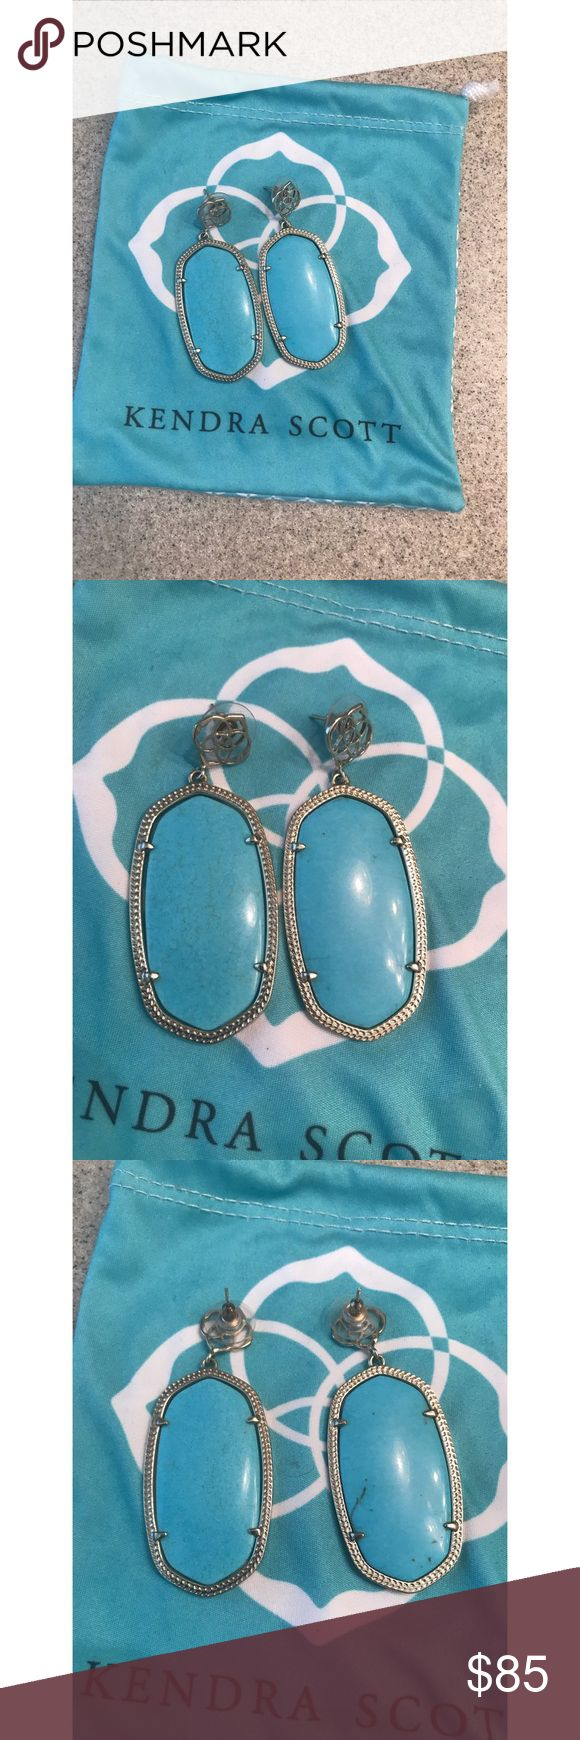 """Kendra Scott """"Davey"""" Earrings - EUC!! Kendra Scott """"Davey"""" Post earrings in Turquoise set in gold. Danielle size. These are in excellent condition! Rare and hard to find! I have not seen anything like these on any sales sites. From a smoke-free home as well. No trades! Firm price! Bundle for a discount! Kendra Scott Jewelry Earrings"""